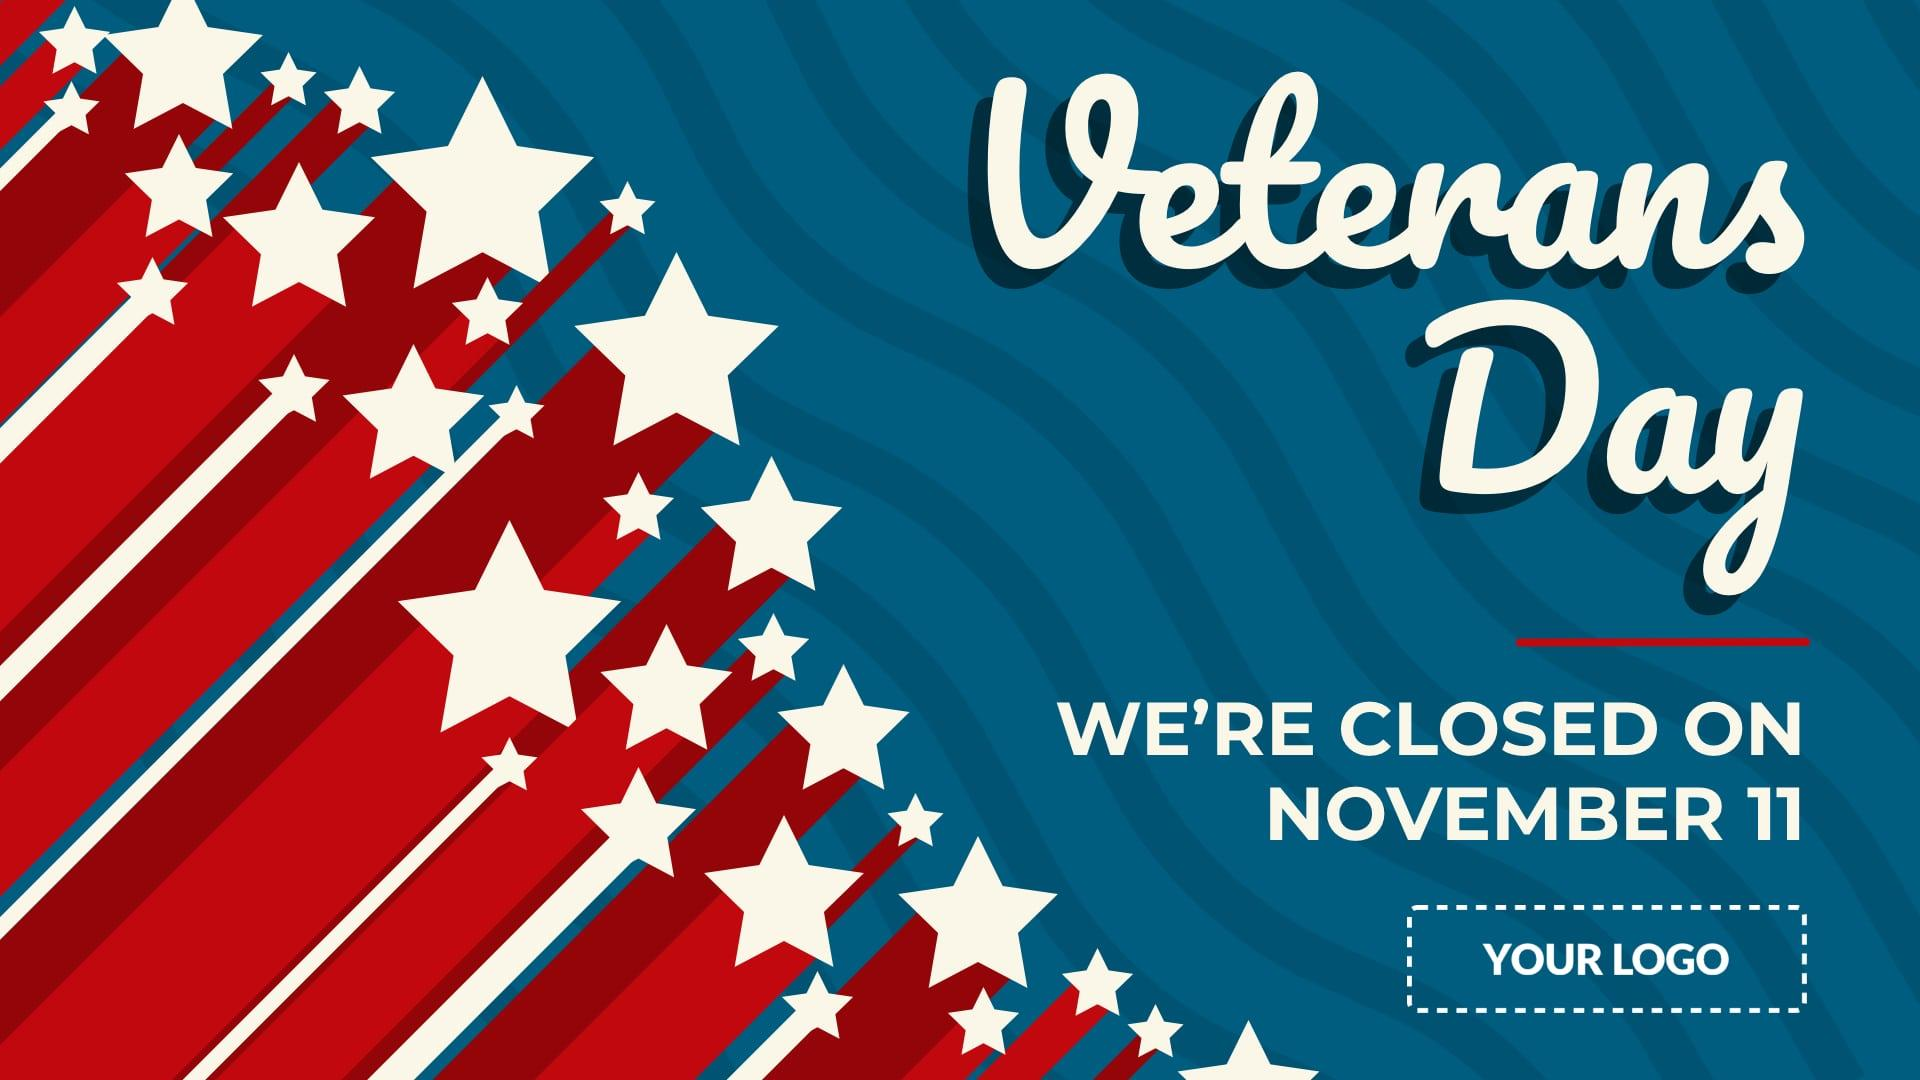 Veterans Day Digital Signage Template